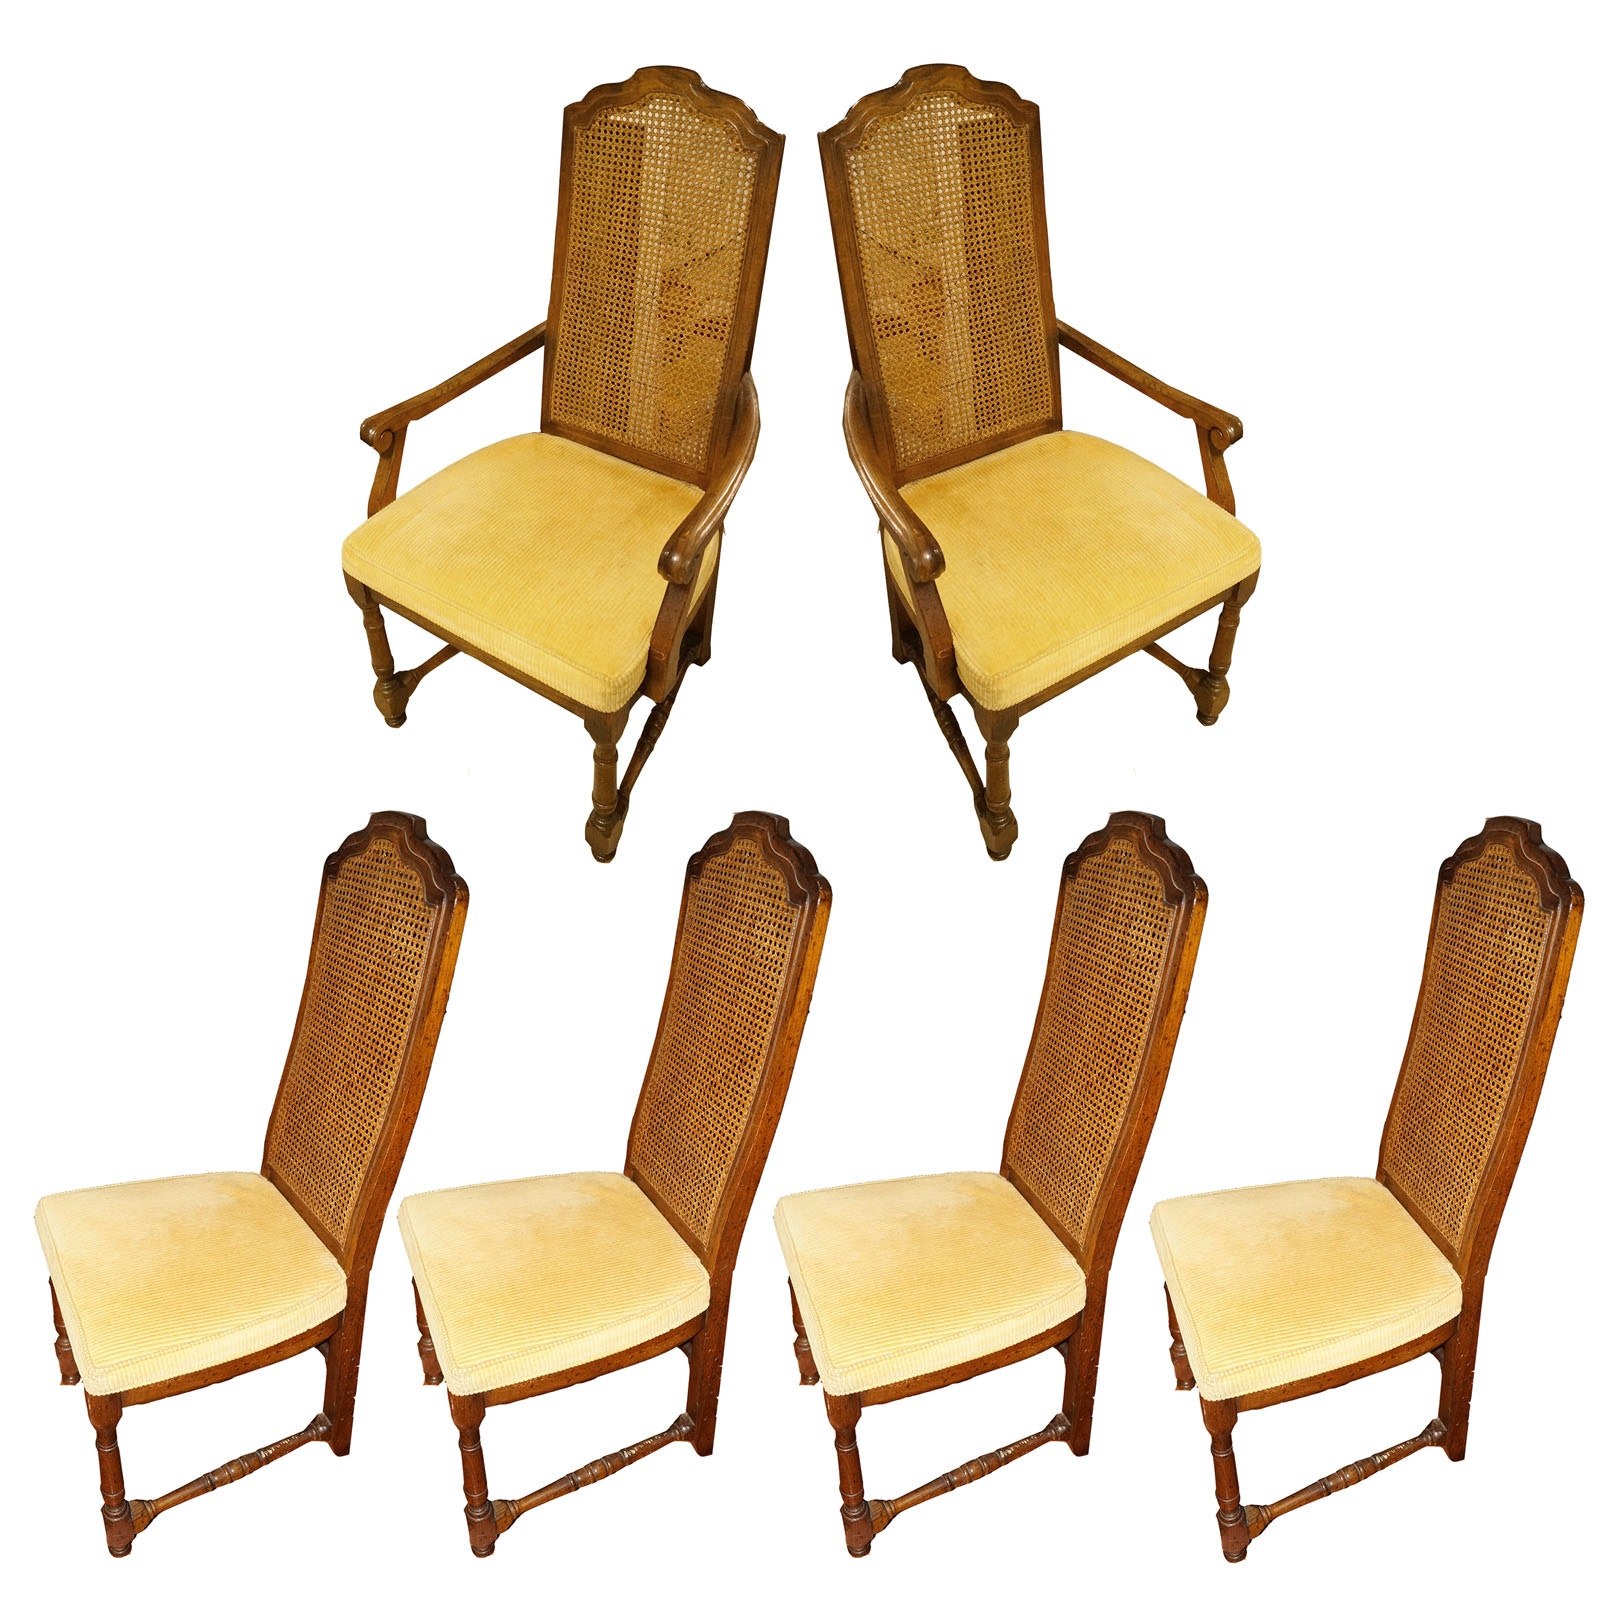 Drexel Heritage Cane Back Dining Chairs with Extra Cushions